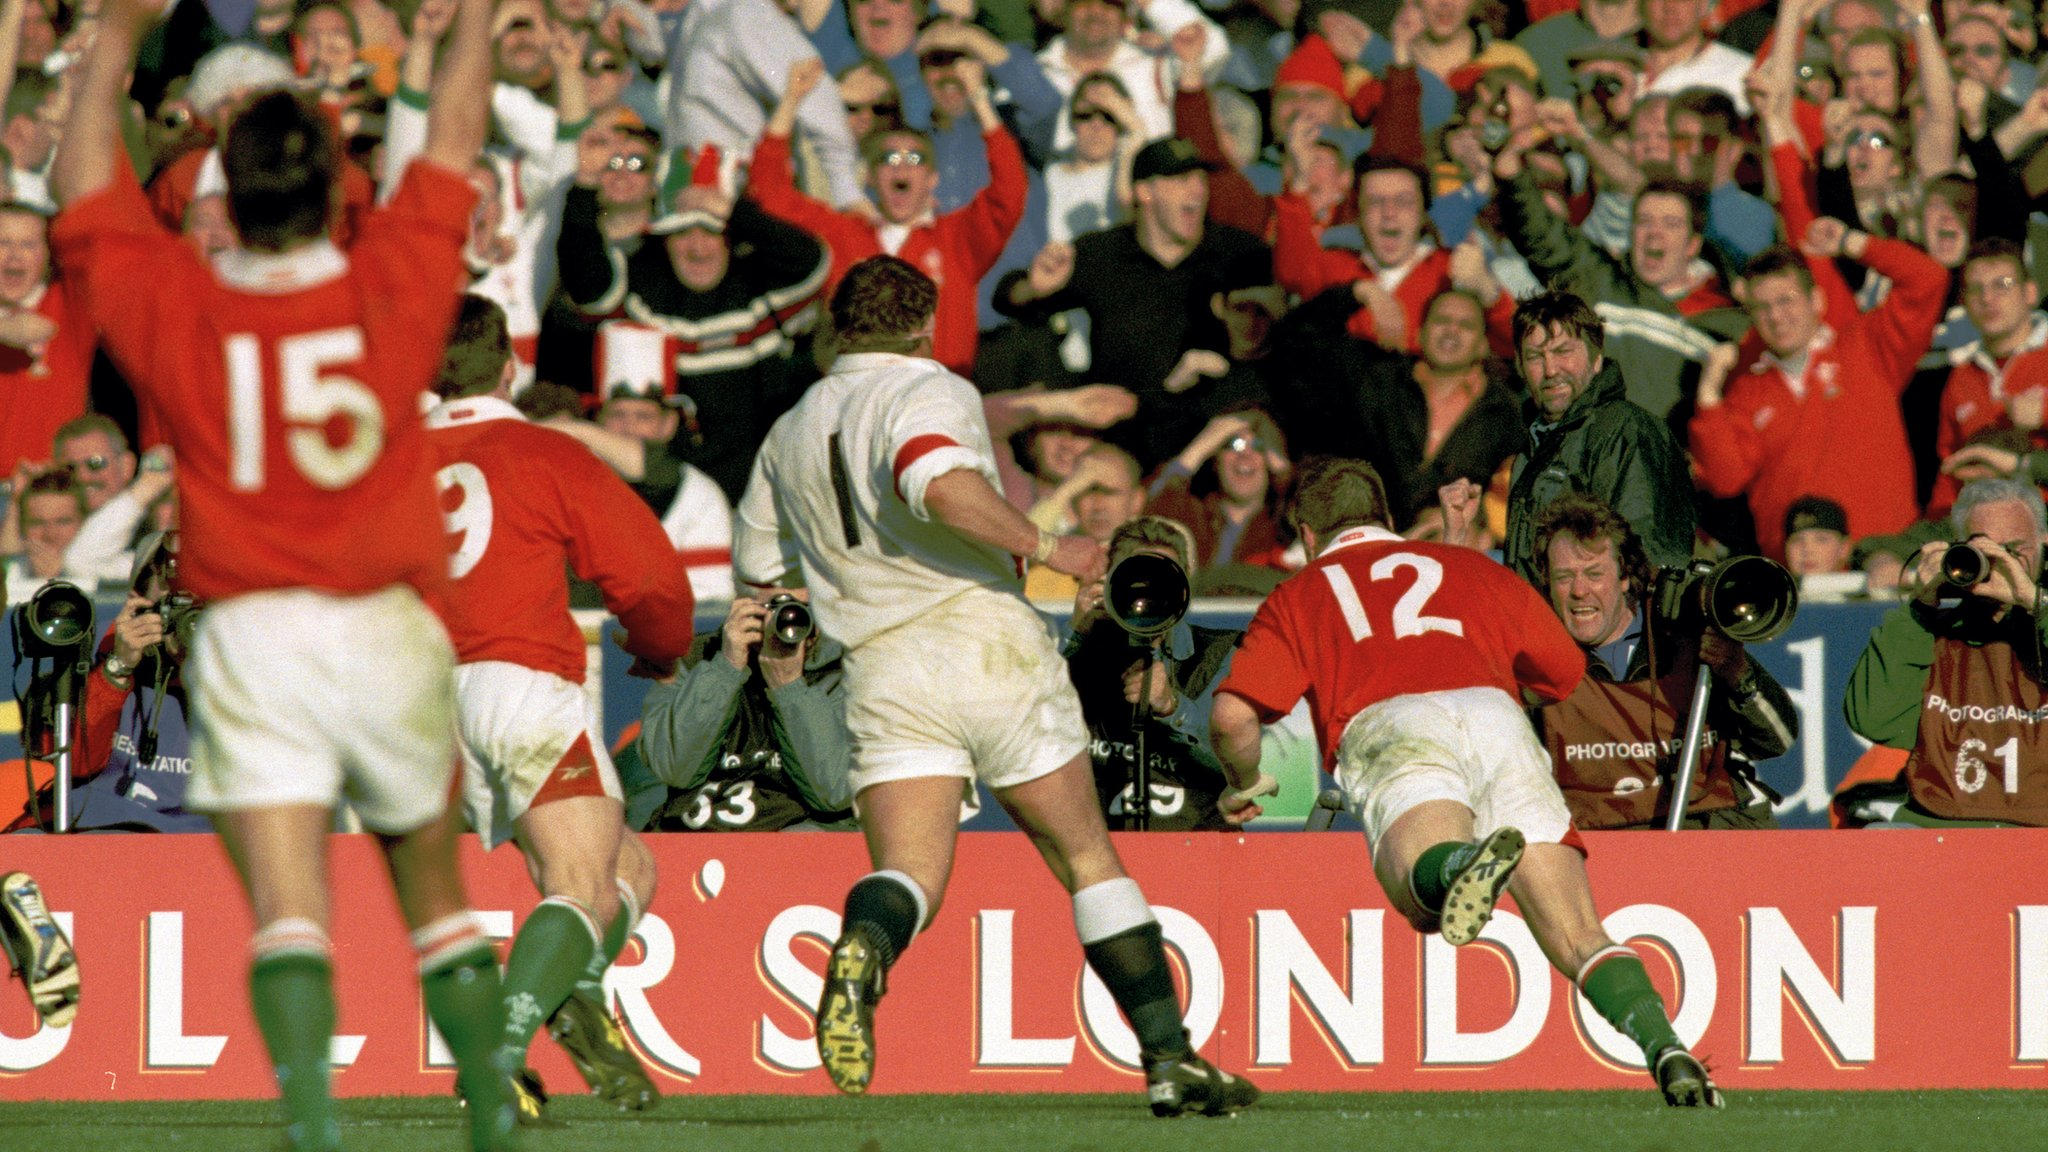 Six Nations 2019: Max Boyce recounts 1999 Wales v England thriller